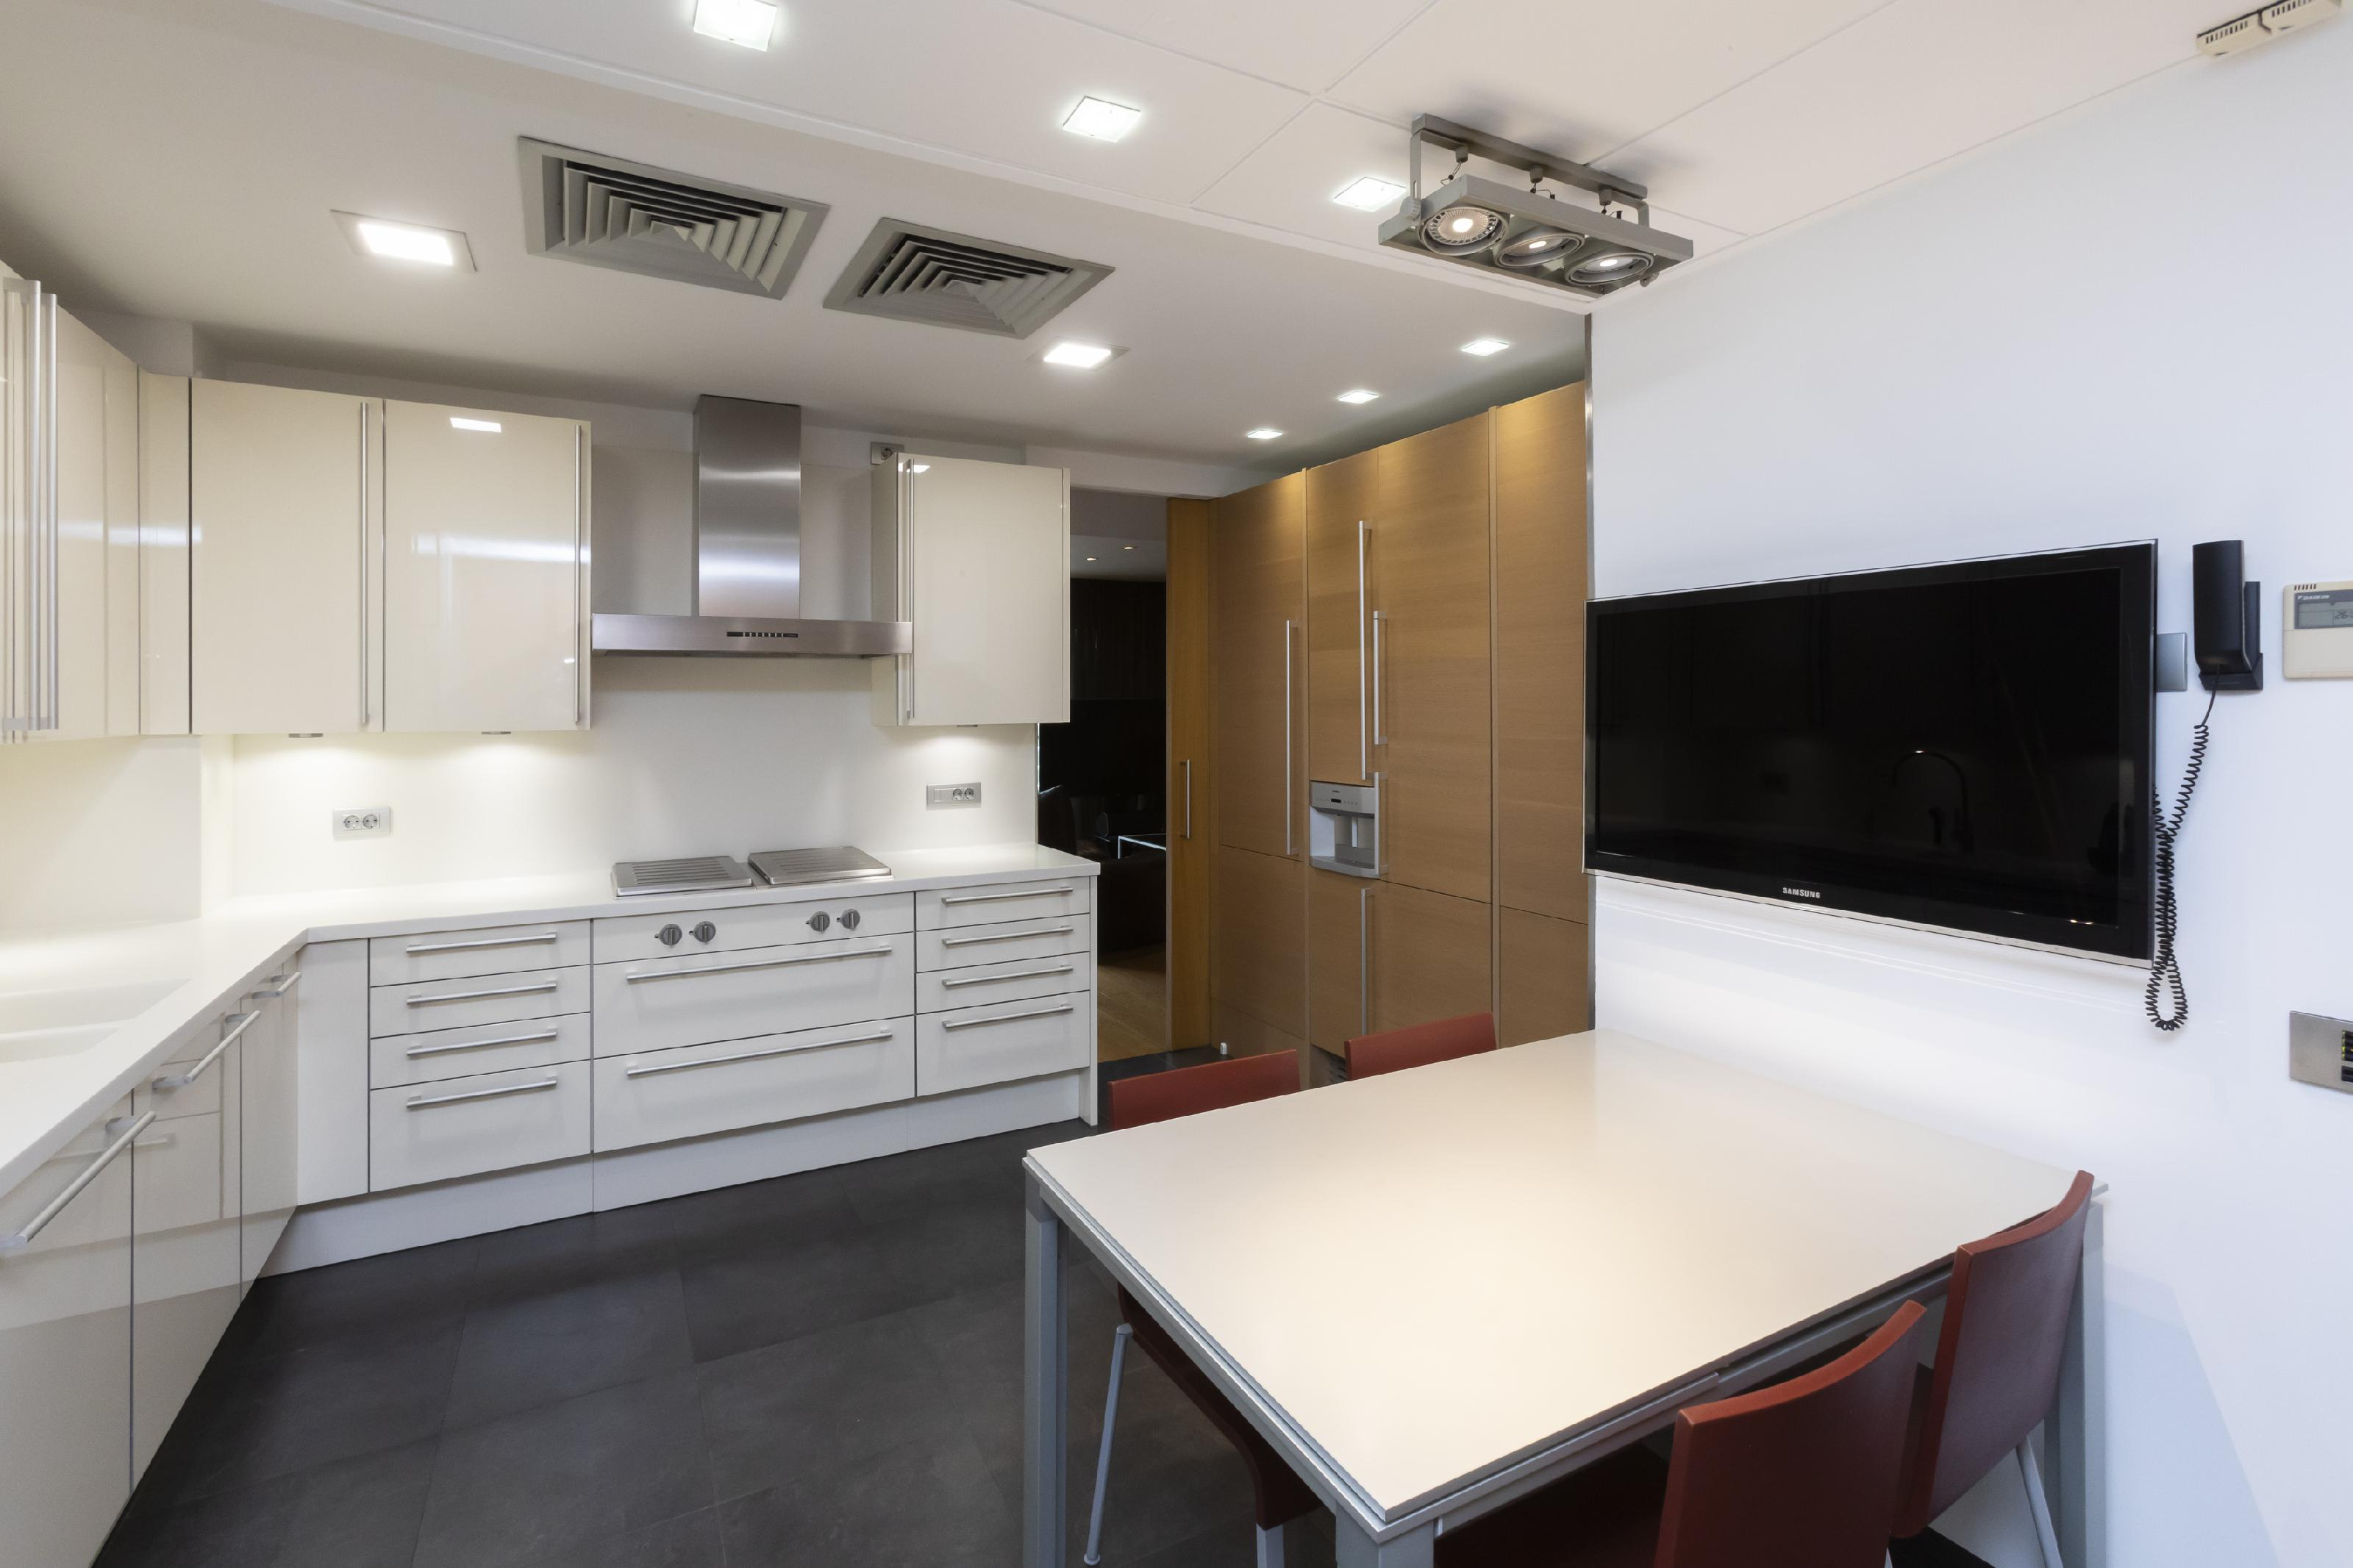 247020 Flat for sale in Les Corts, Les Corts 13